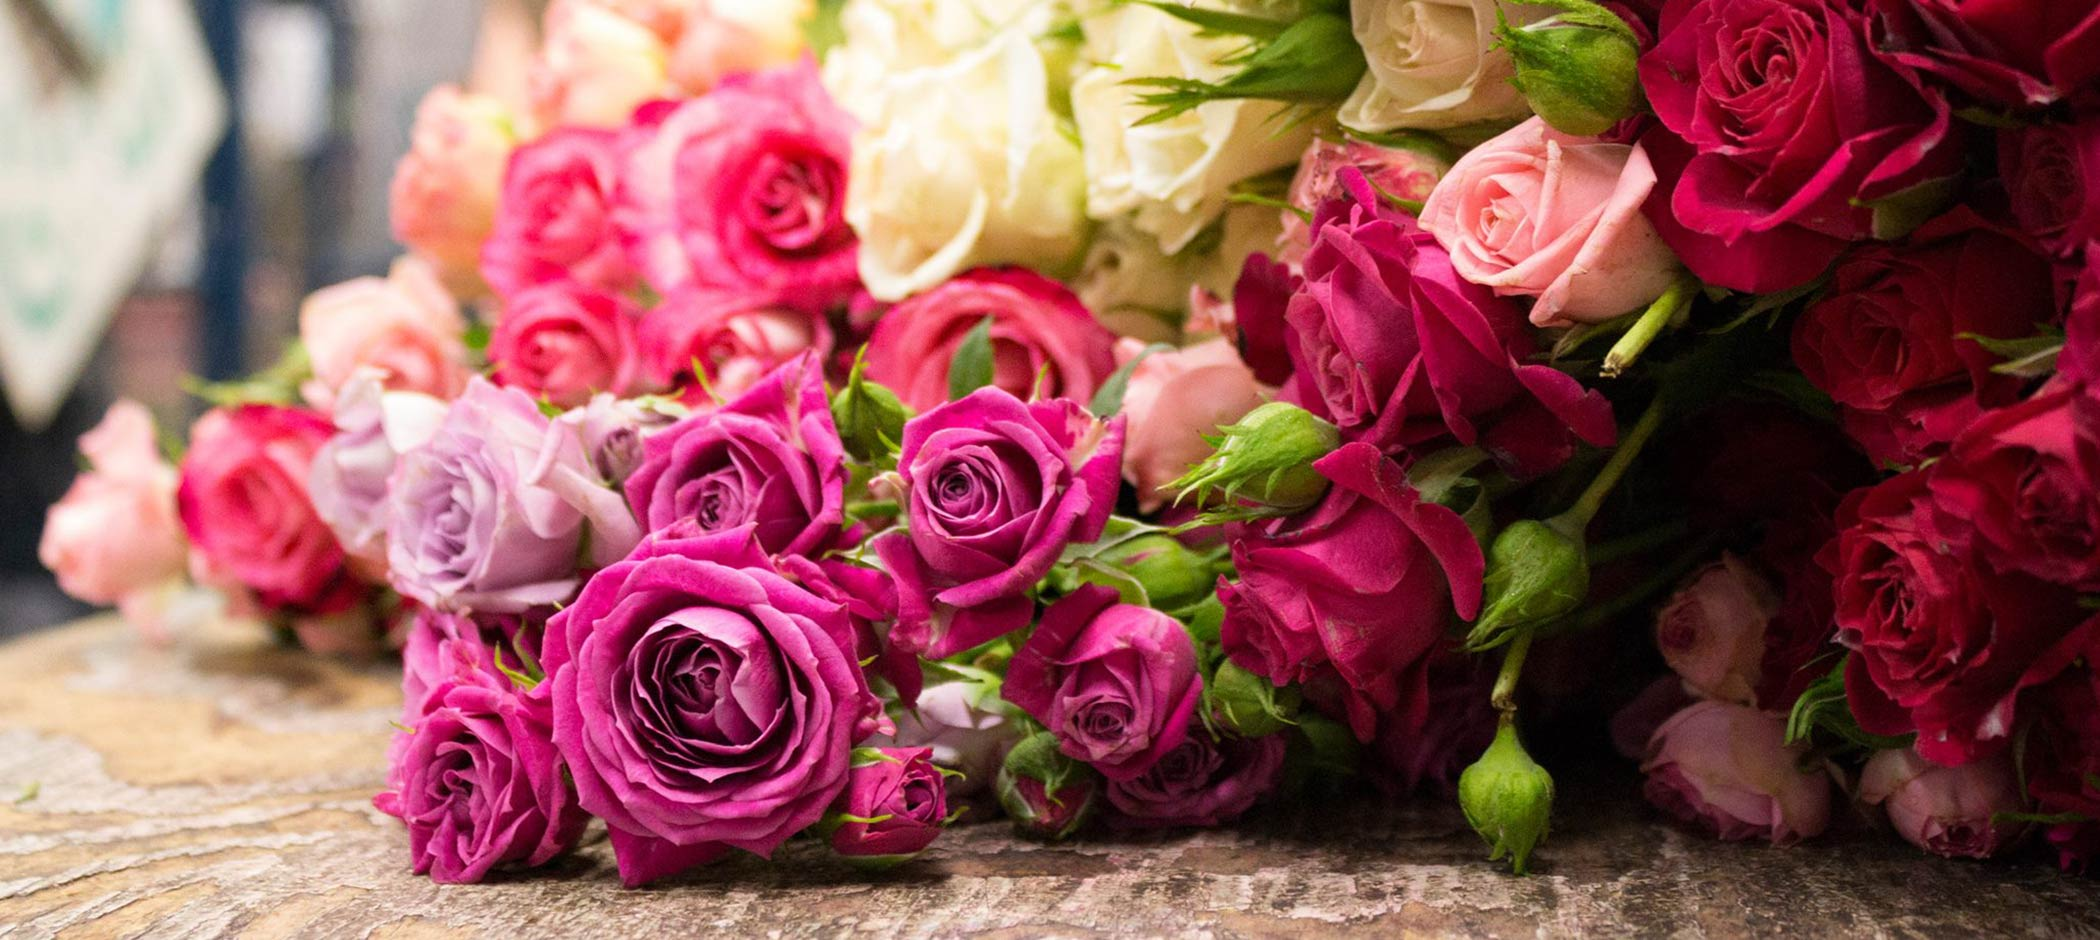 Viviano's Flower Shop roses